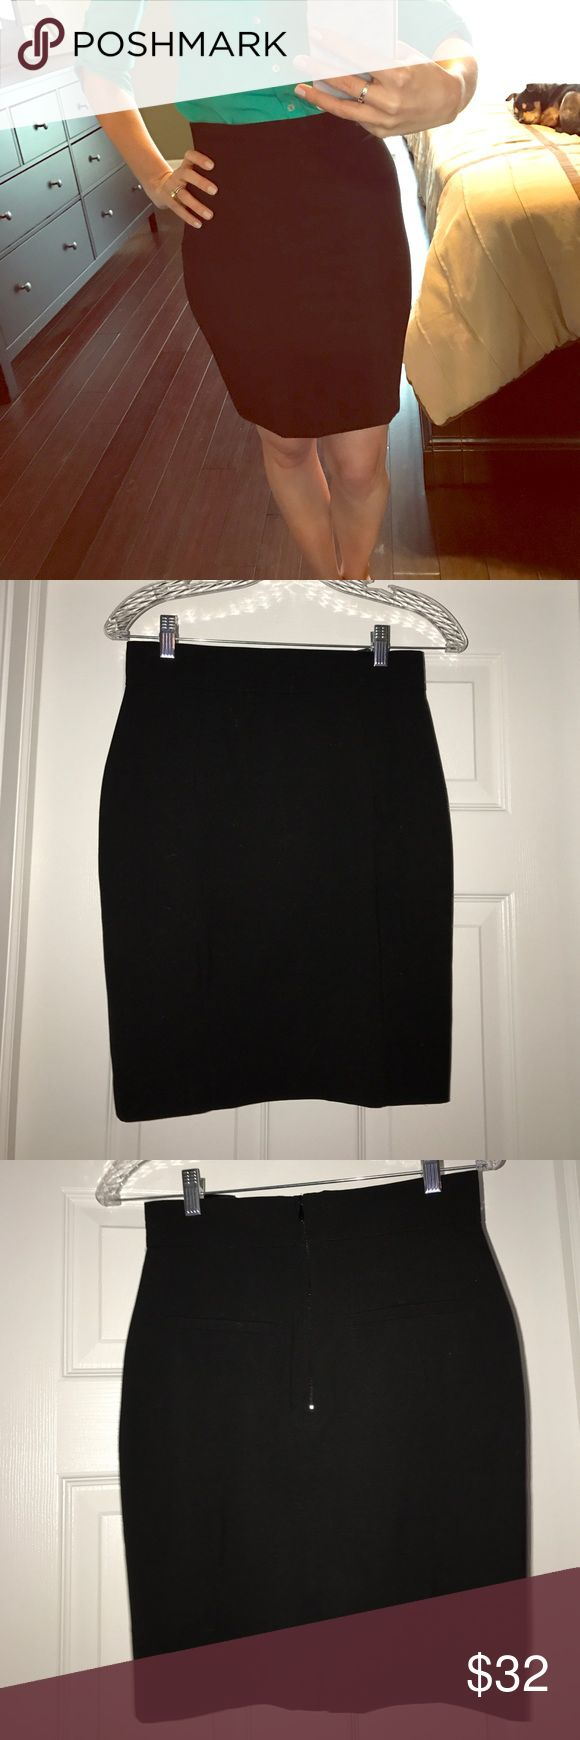 NWOT black high waisted skirt Never worn high waisted black skirt with zipper, faux pockets, and slit in the back. Fully lined. Size 6, but fits more like a 4 in my opinion. H&M Skirts Pencil